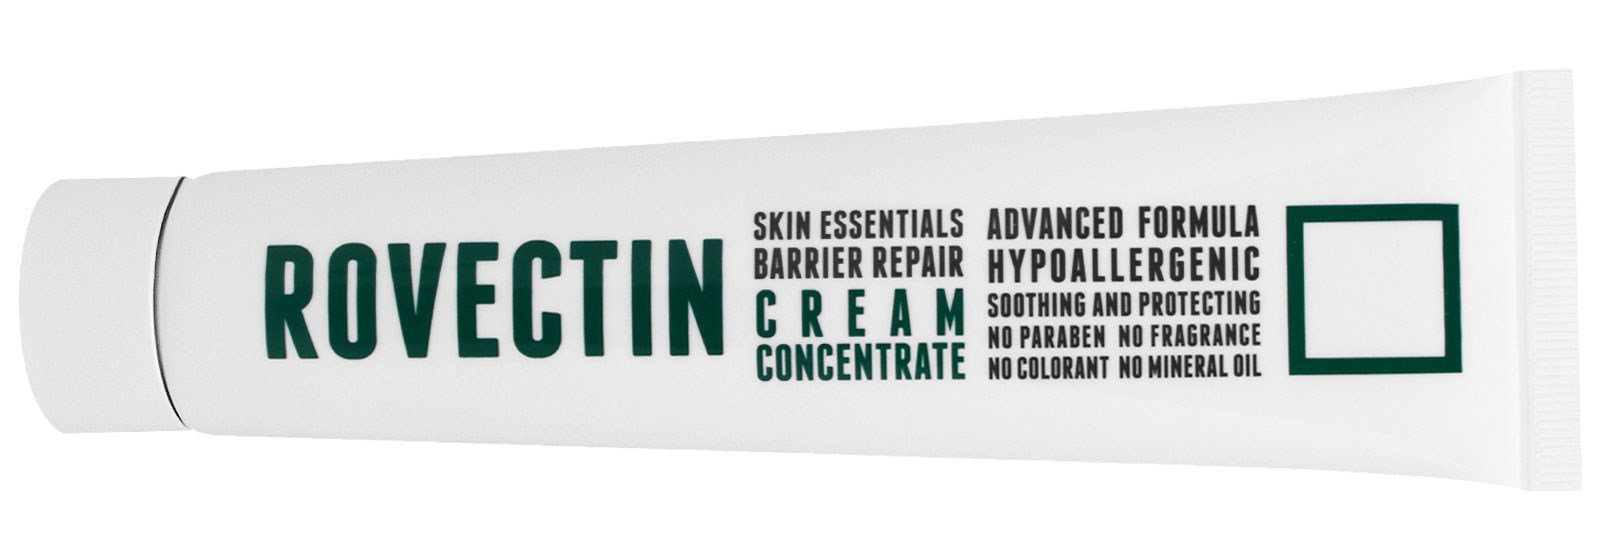 rovectin Skin Essentials Barrier Repair Aqua Concentrate